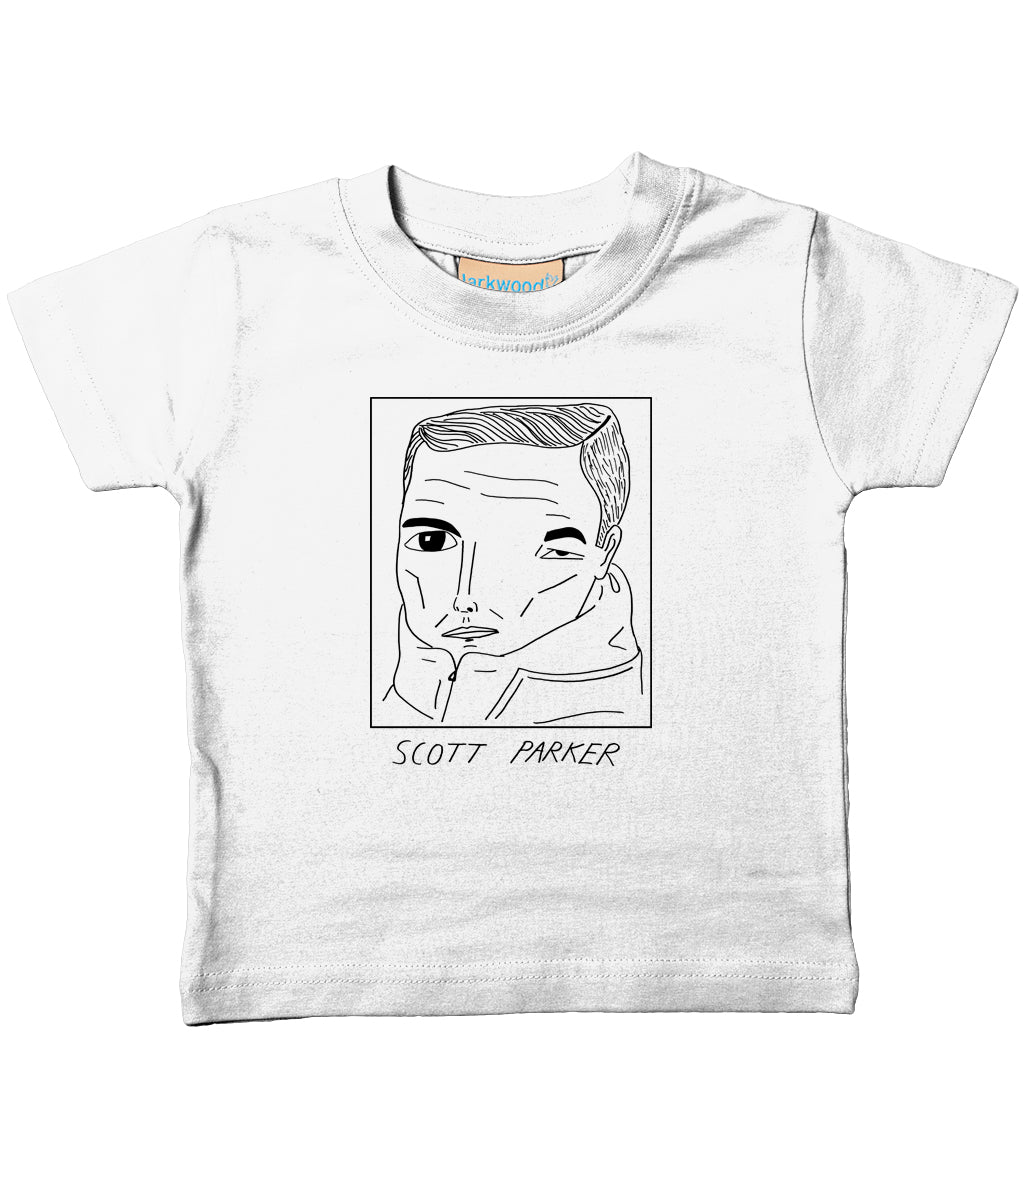 Badly Drawn Footballers - Baby / Toddler Organic T-Shirt - Scott Parker